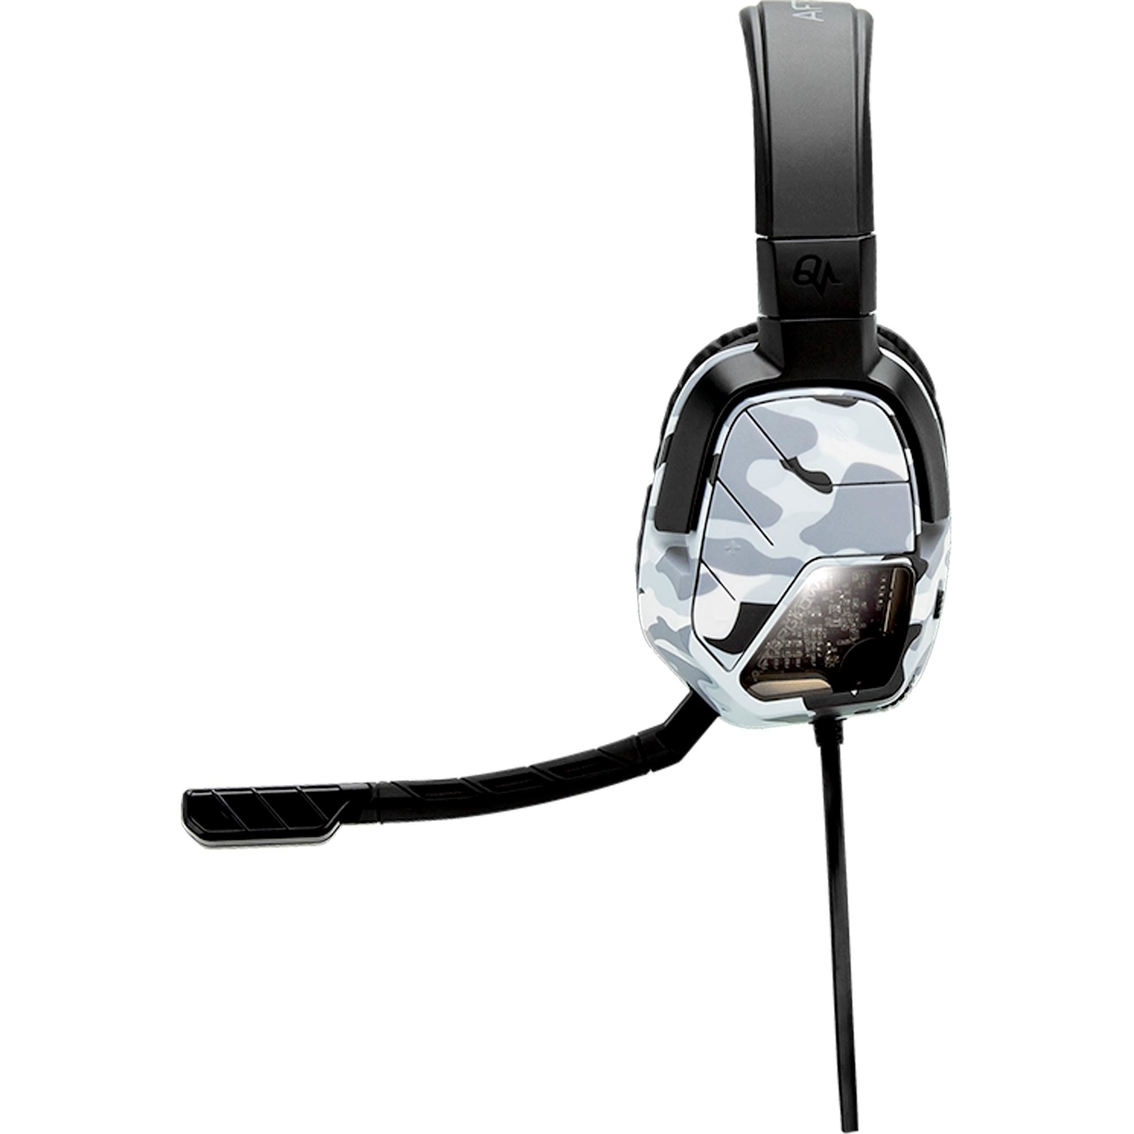 Performance Designed Products Afterglow Lvl 5+ Wired Headset